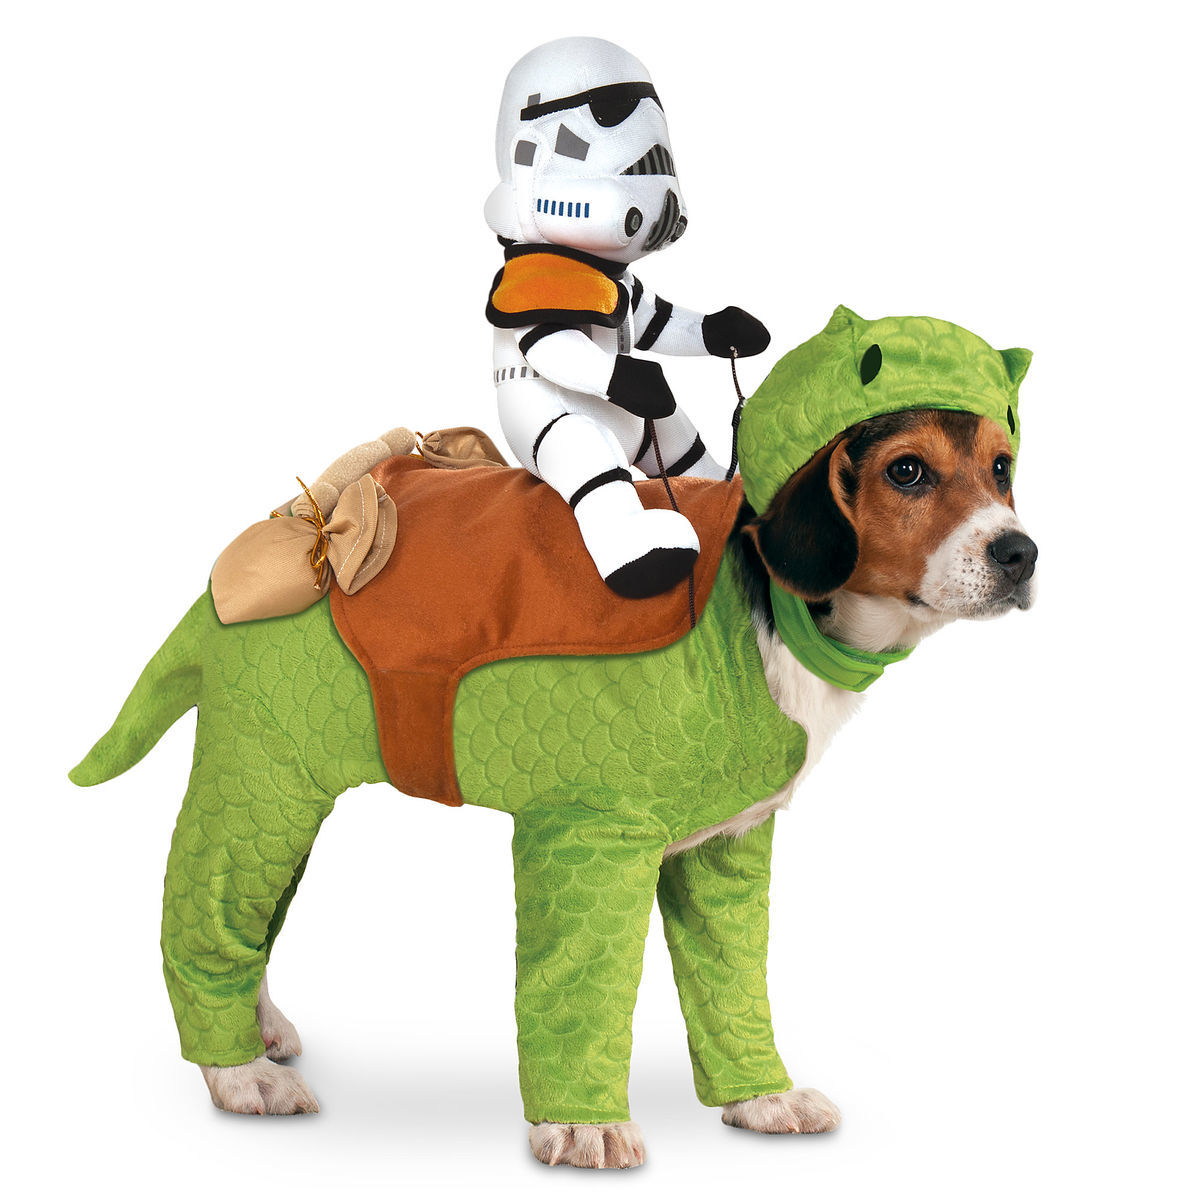 Pet Costumes With Disney Style! 3